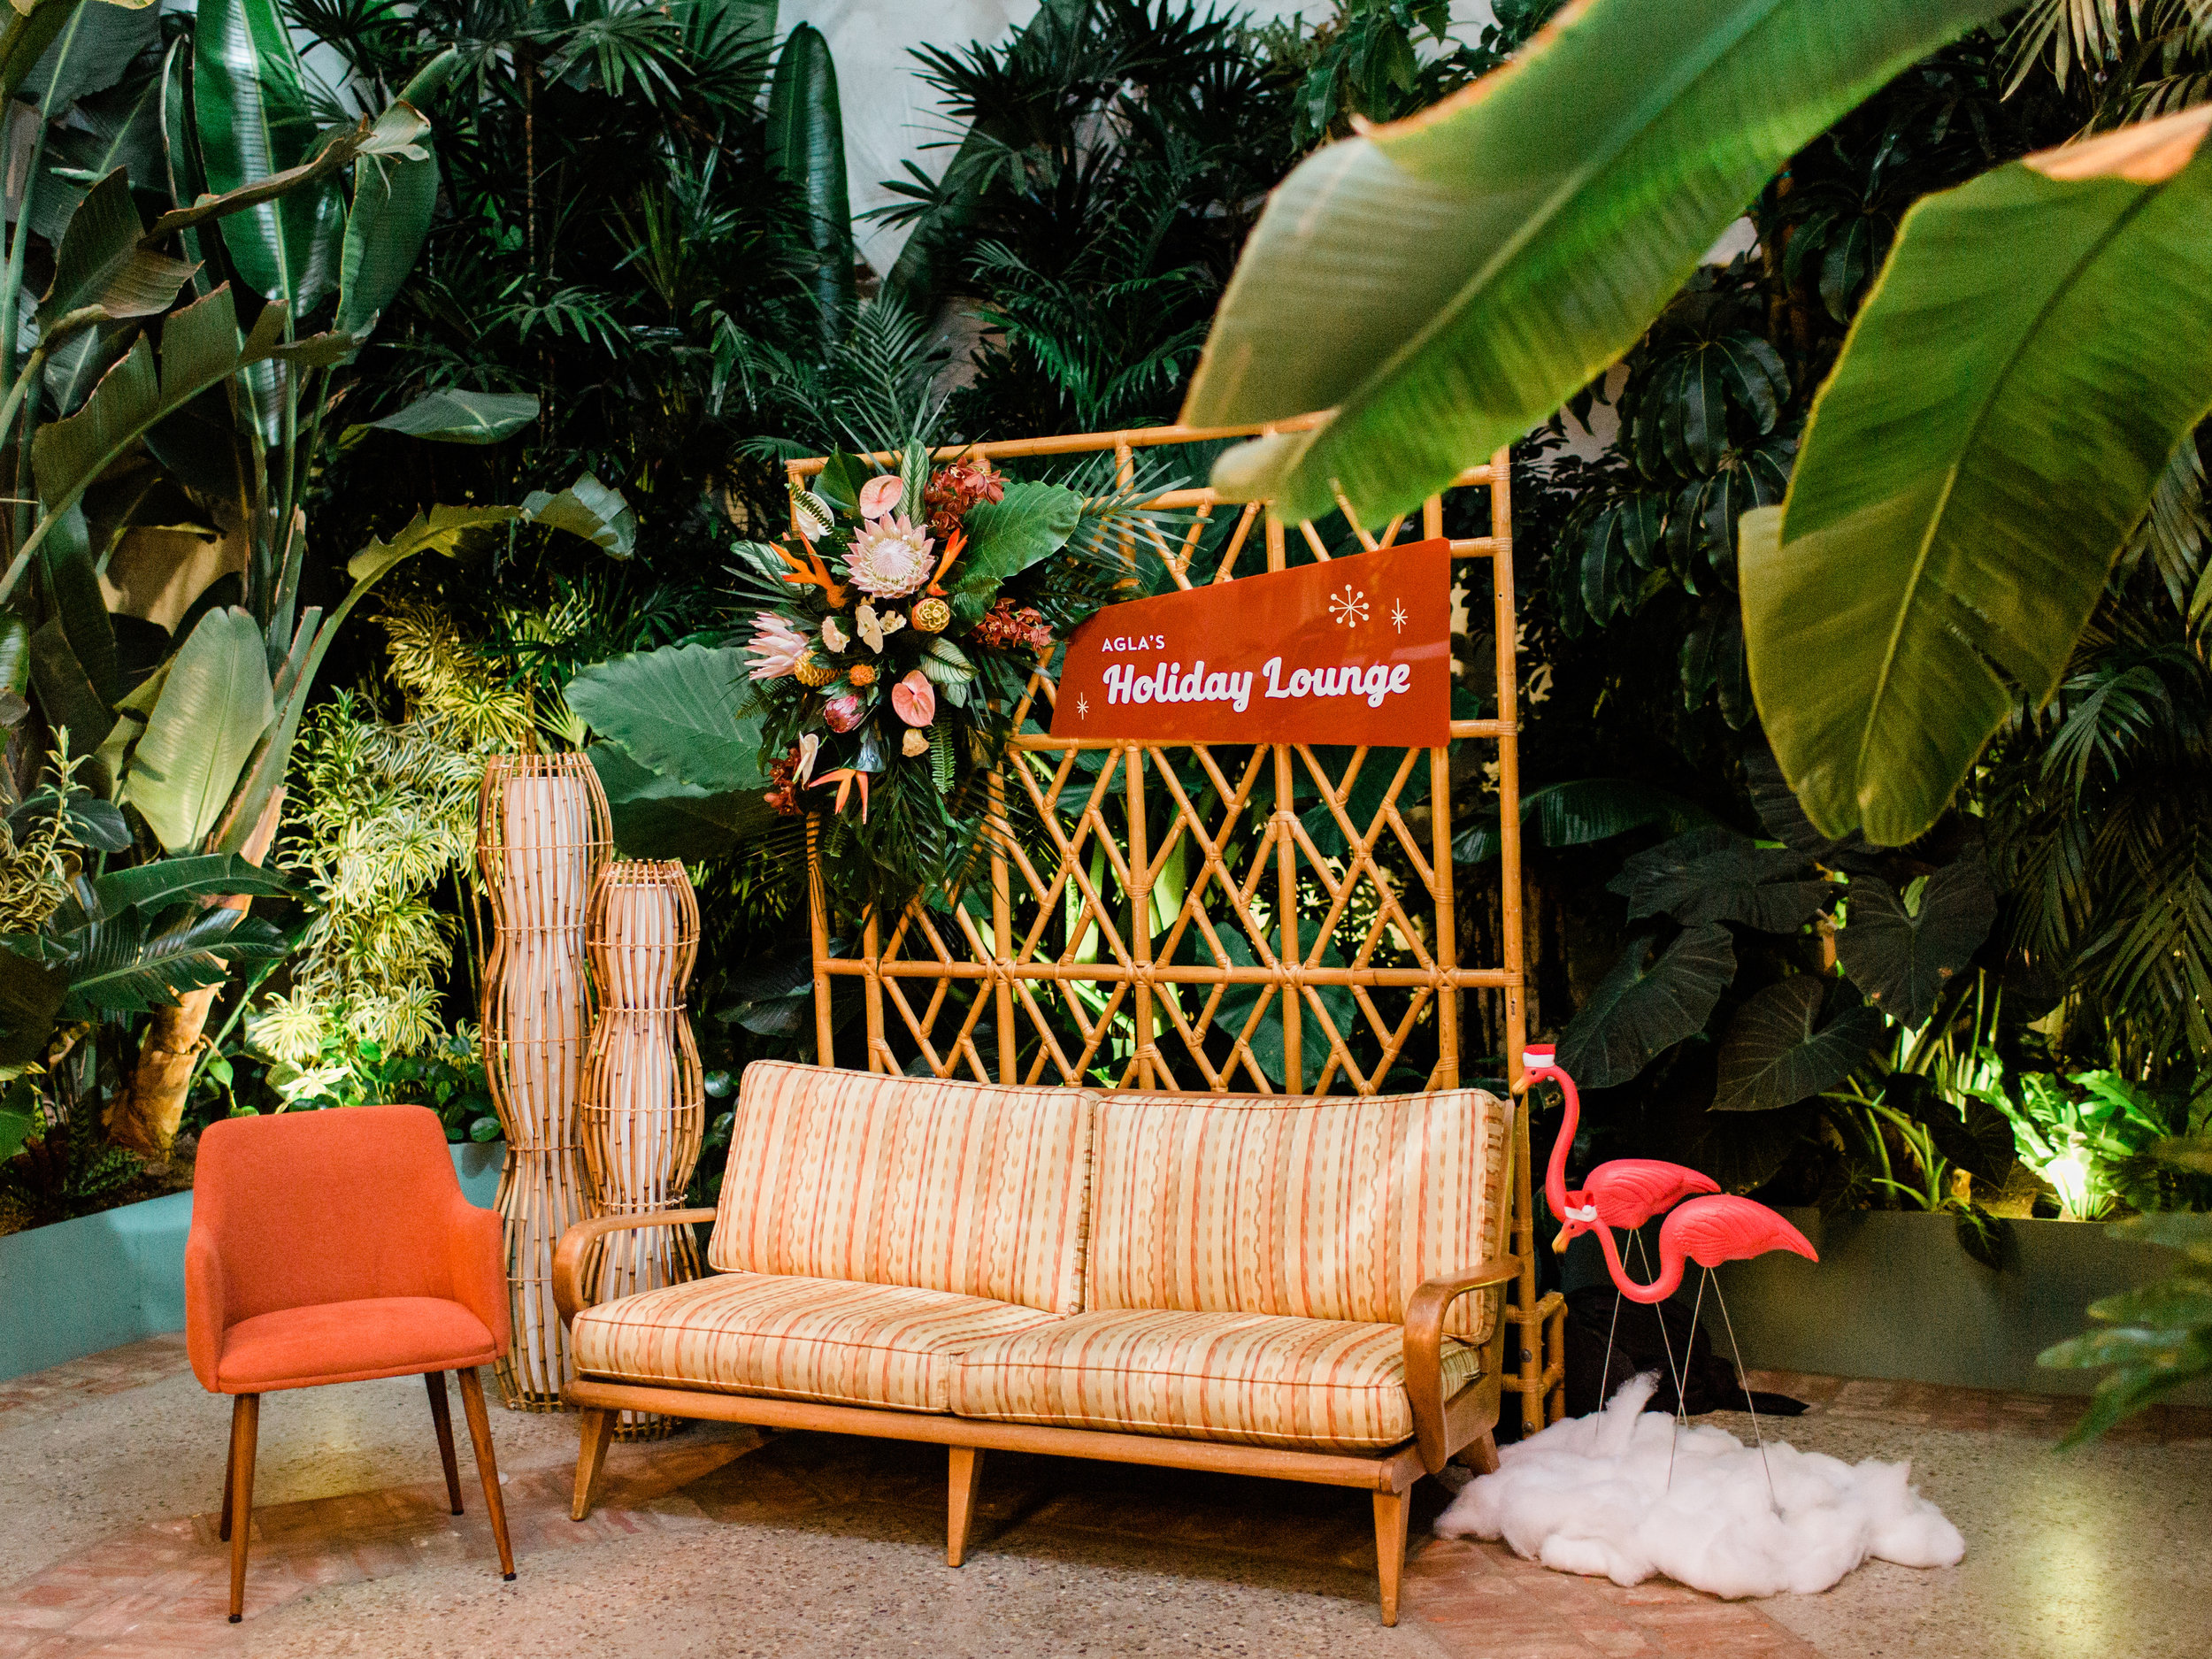 custom wedding decorations, tropical wedding decorations, outdoor wedding decorations, wedding decor, Los Angeles wedding  || Orange Blossom Special Events